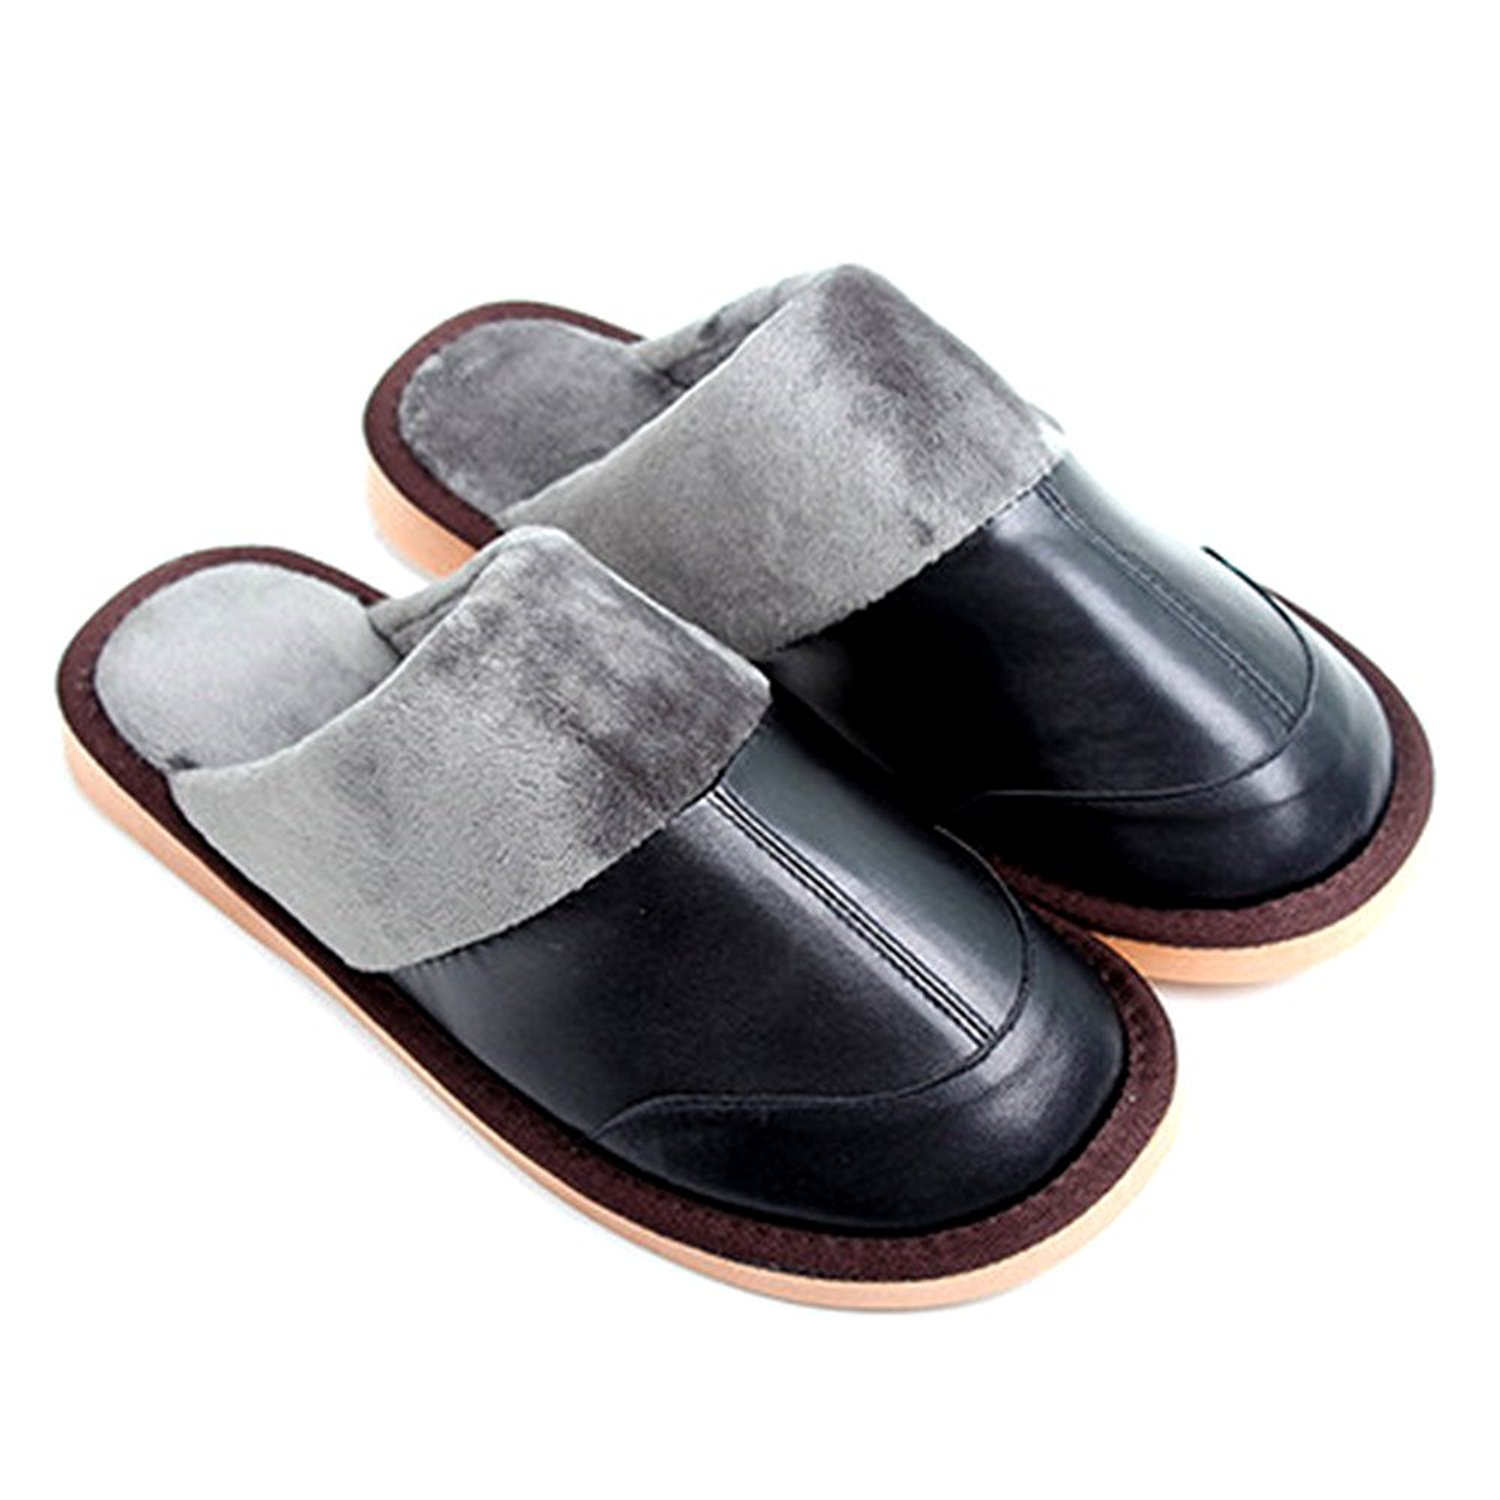 b8fe0a3353d Get Quotations · Buzede Home Cotton Leather Slippers Women Men Winter Warm  Thick Sole Floor Couple Slippers Indoor Non